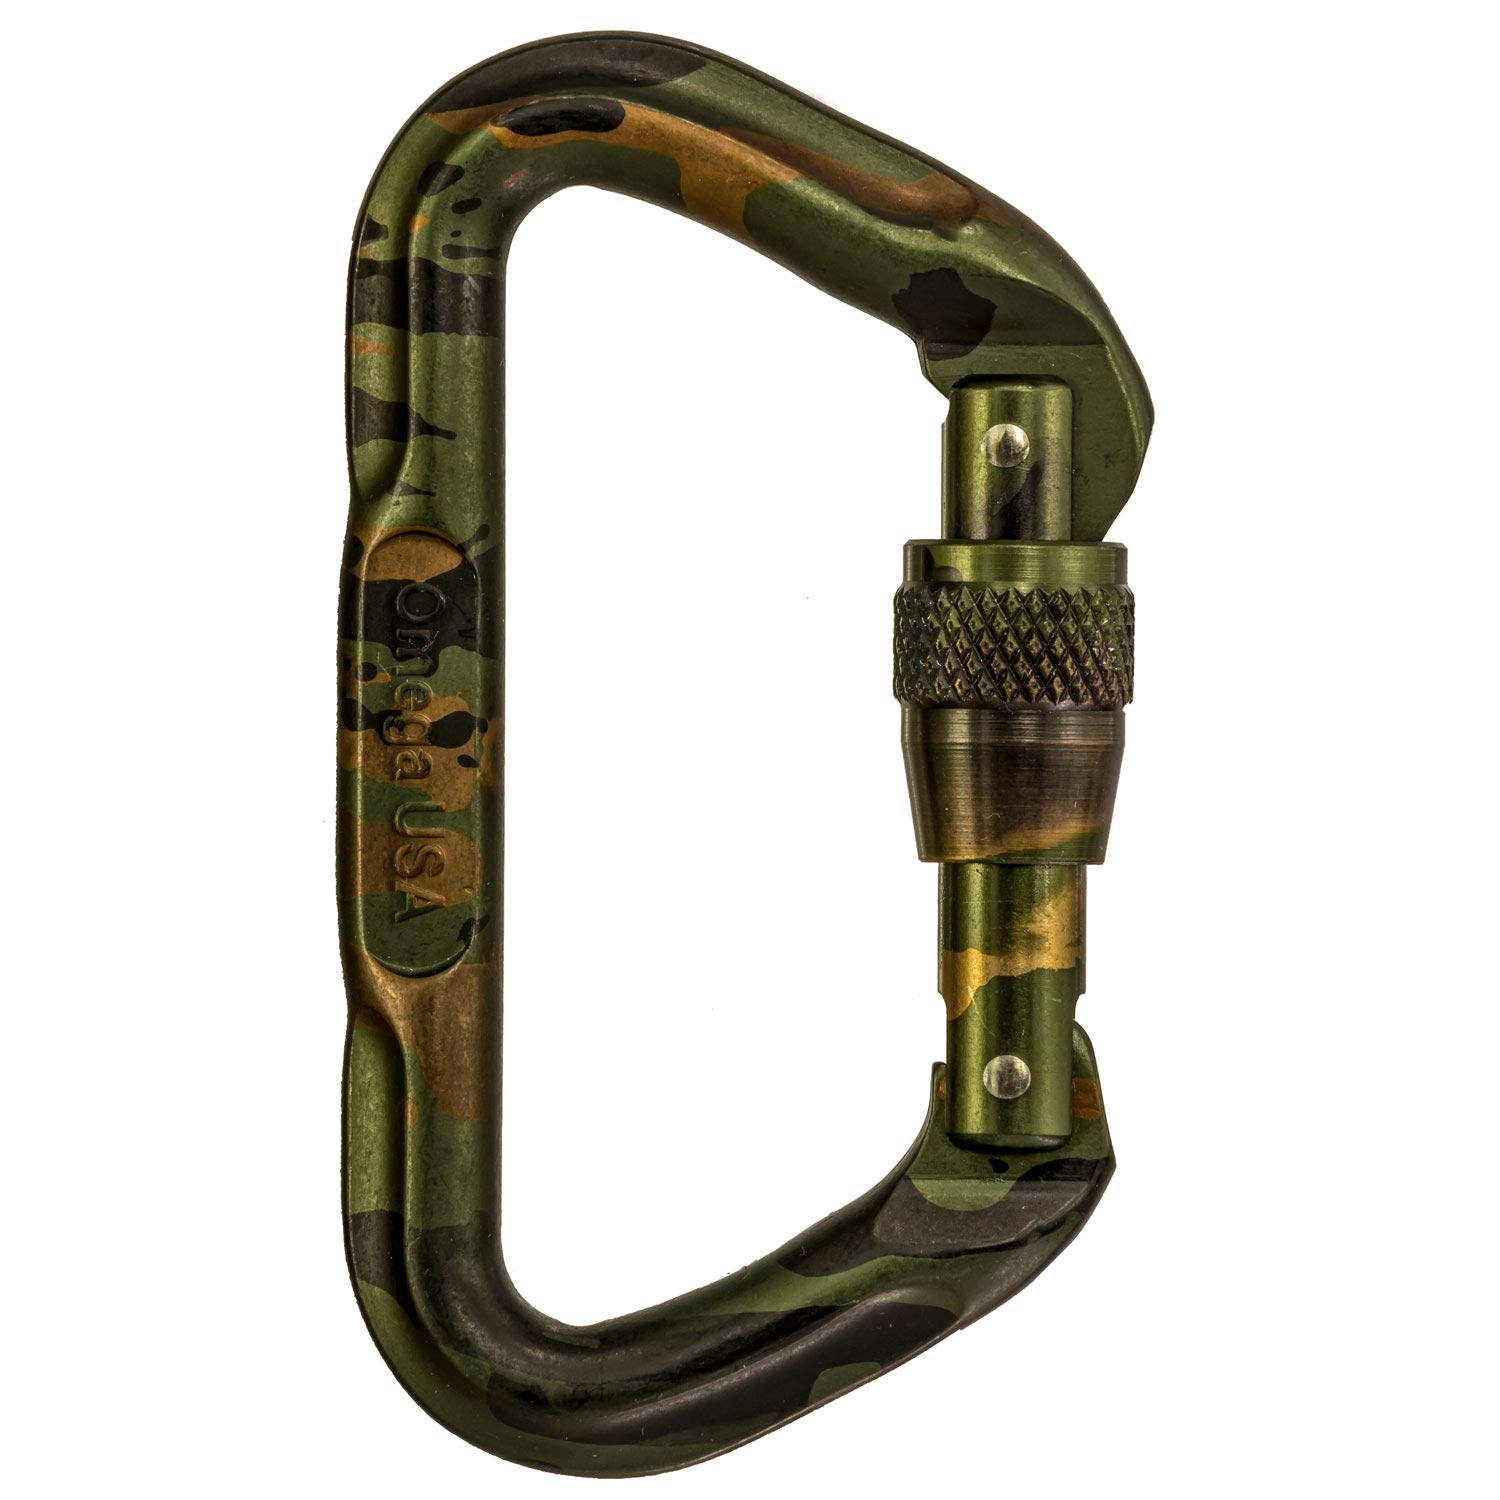 Omega Pacific Carabiner D, Screw Locking, Camouflauge, USA Made, ISO Cold Forged Aircraft Aluminum Alloy for Climbing, Safety, Rescue, Industrial, and Arborist Uses